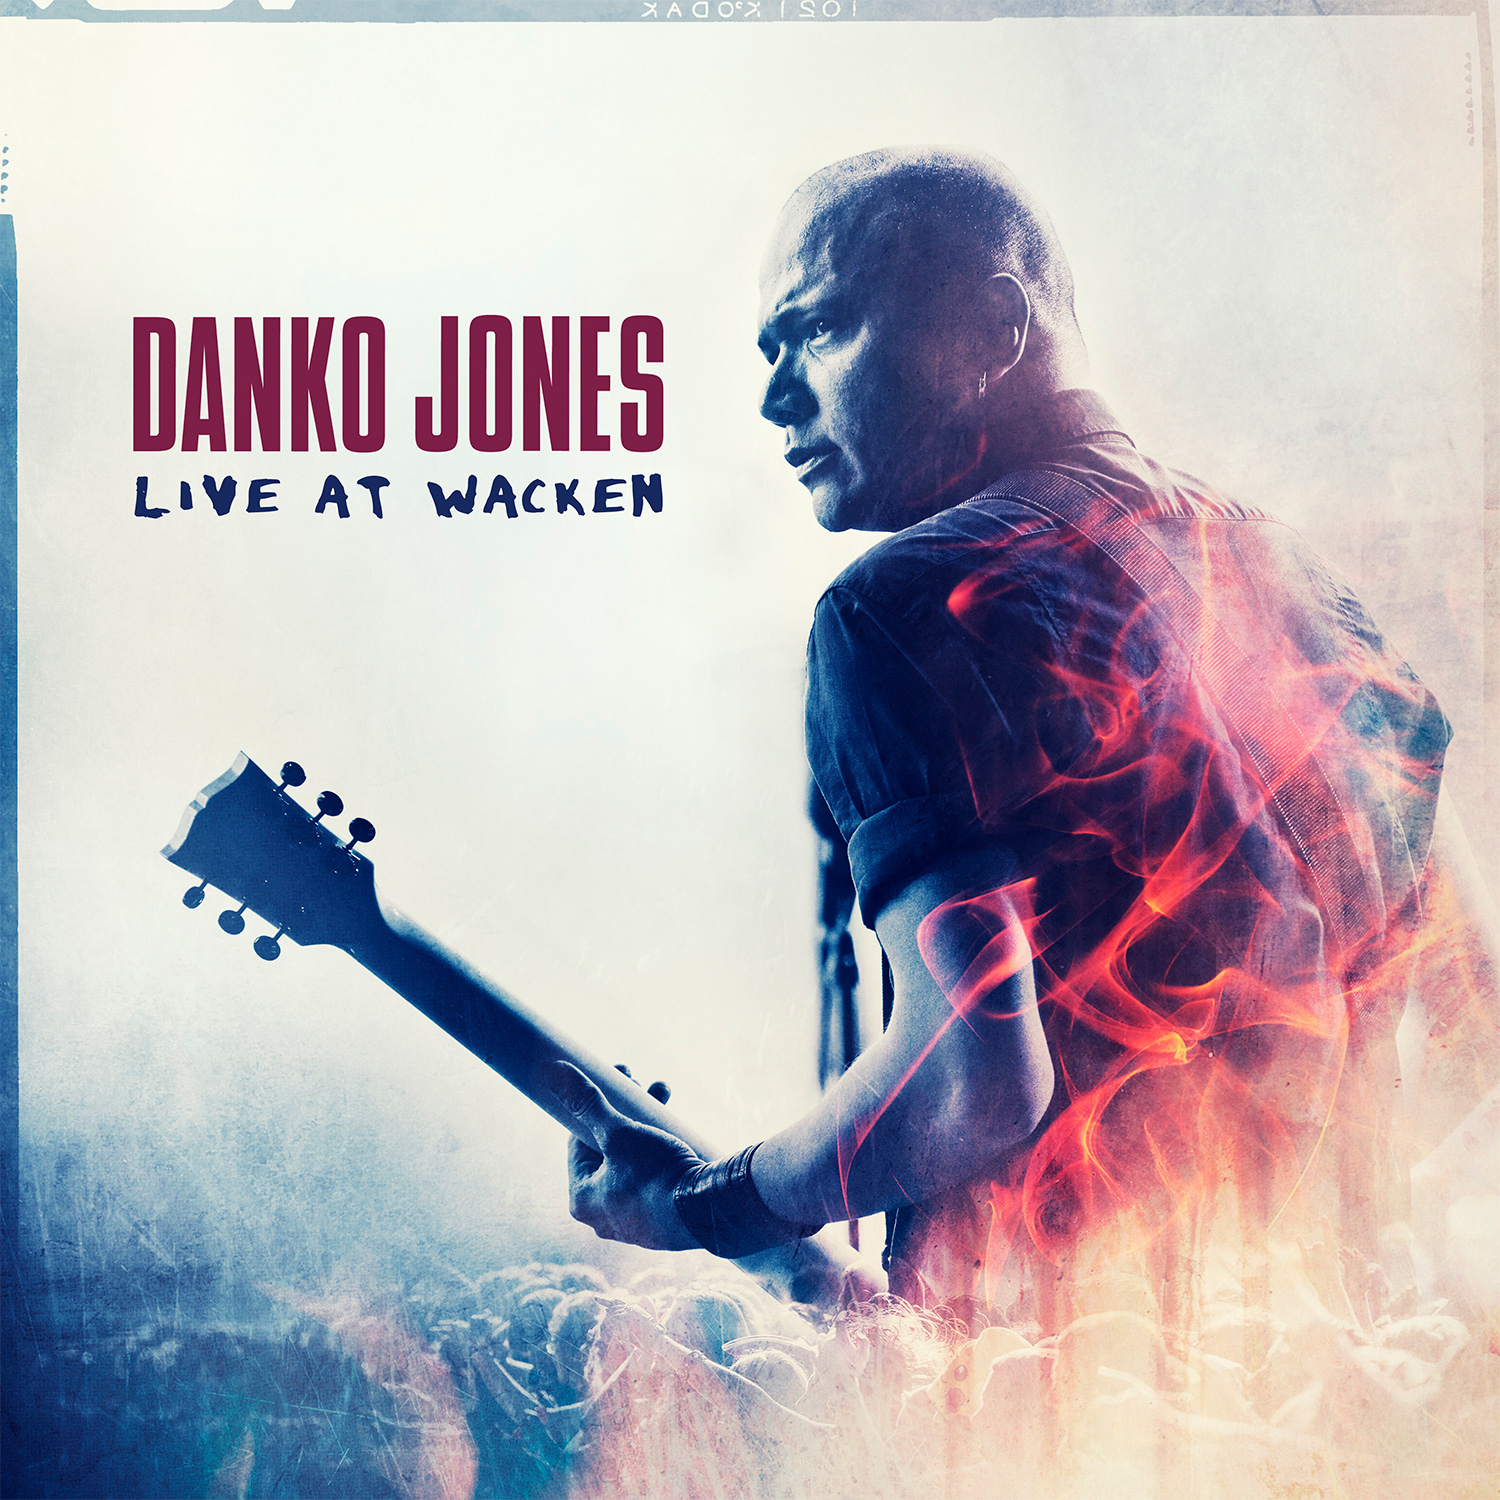 a2016_03_09_05_03_09_danko_jones_live_at_wacken_cover.jpg